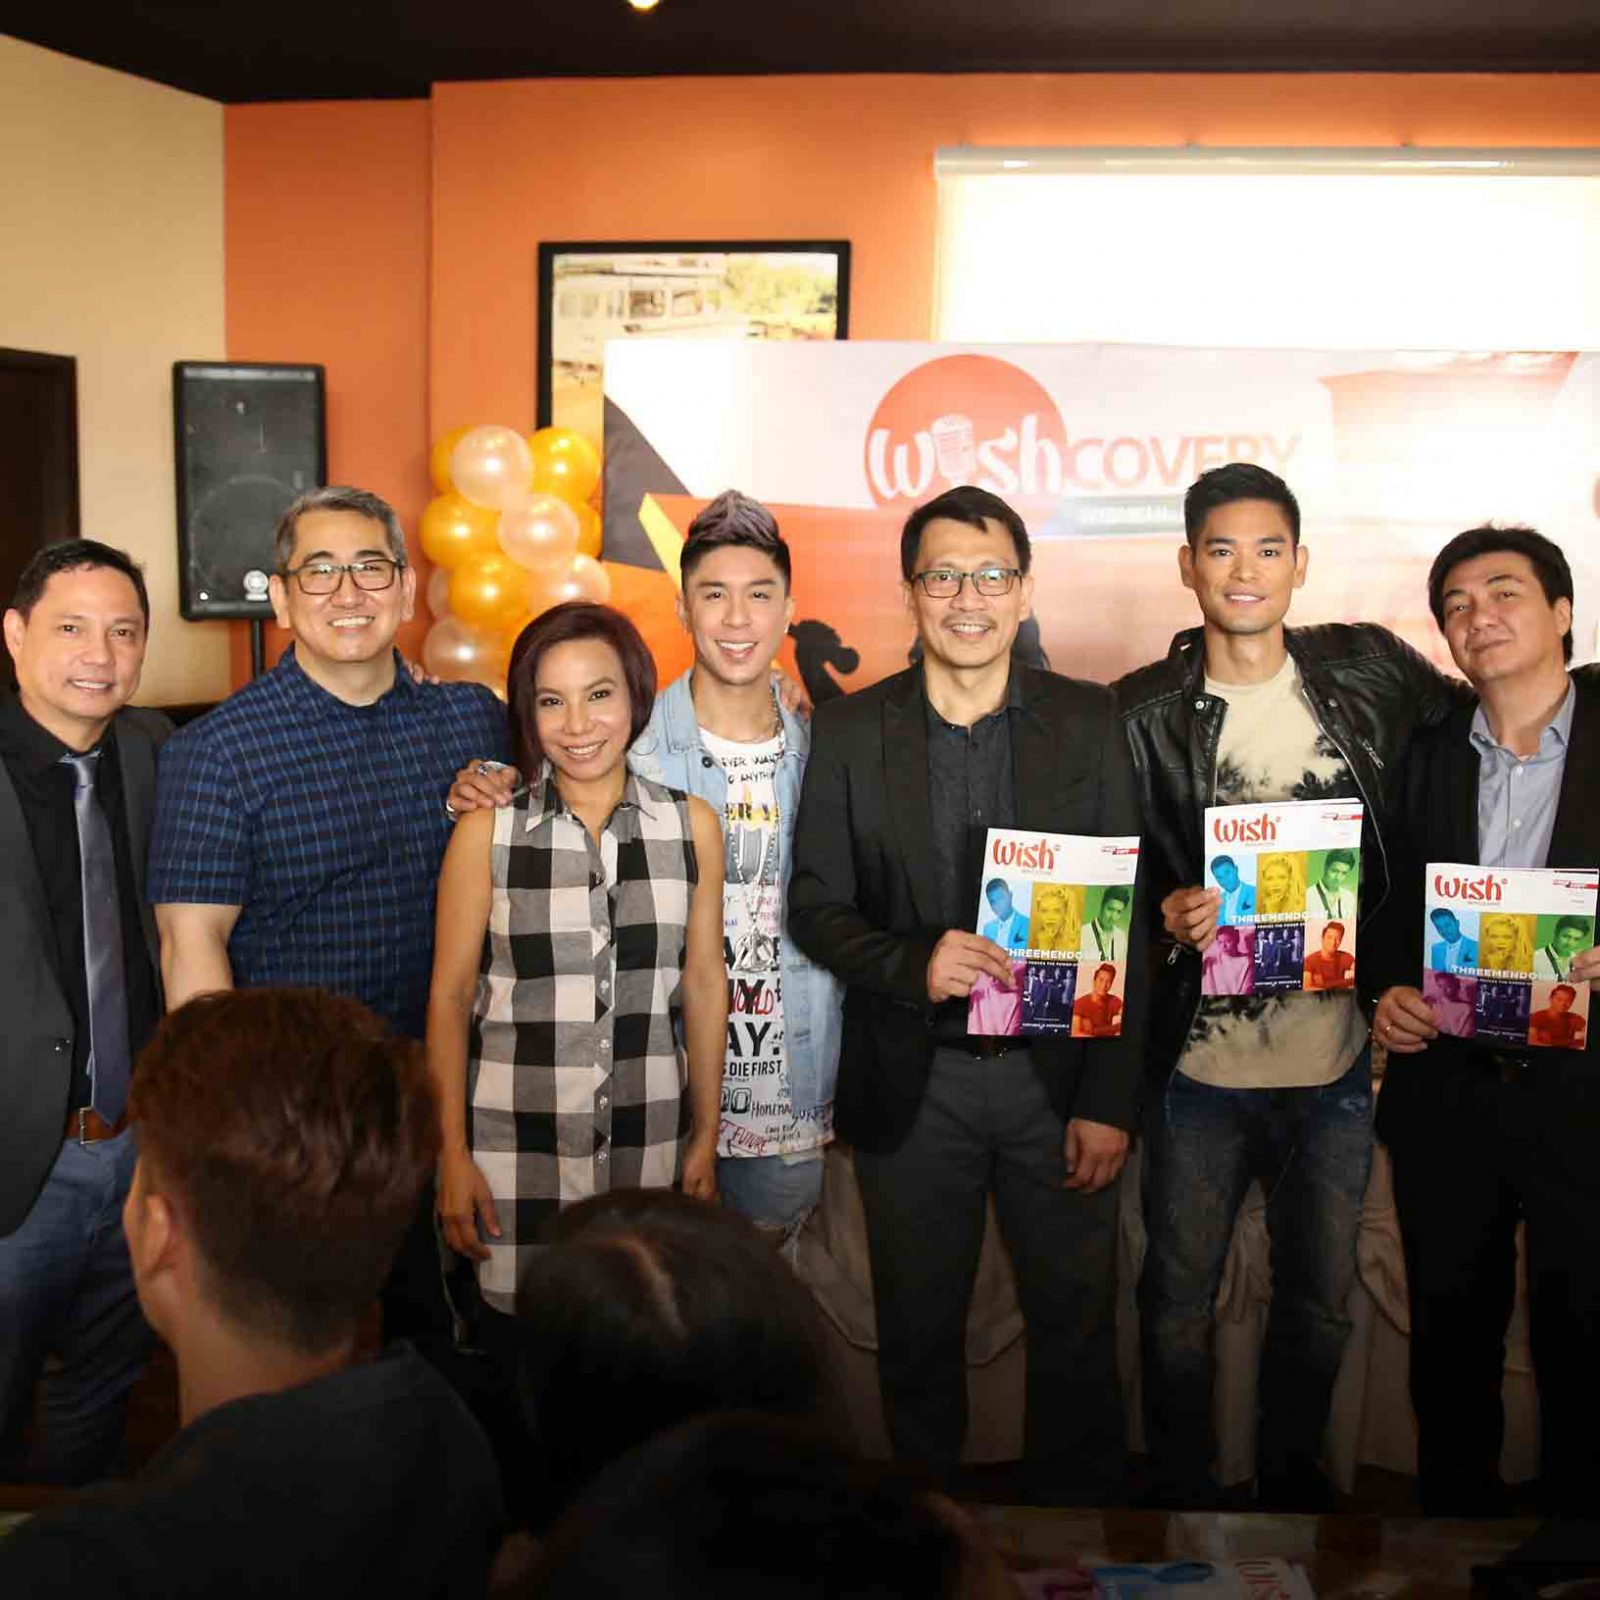 (L-R) BMPI VP for TV and Marketing Mr. Jay Eusebio, Wishcovery reactors Mrs. Jungee Marcelo and Teacher Annie Quintos of The Company, Wishcovery host Kris Lawrence, BMPI President/CEO Kuya Daniel Razon, Wishcovery reactor JayR, and BMPI VP for Radio Mr. Bong Etorma pose for a snapshot with the teaser of the soon-to-be-launched Wish 107.5 magazine.   (Photo courtesy of Photoville International)